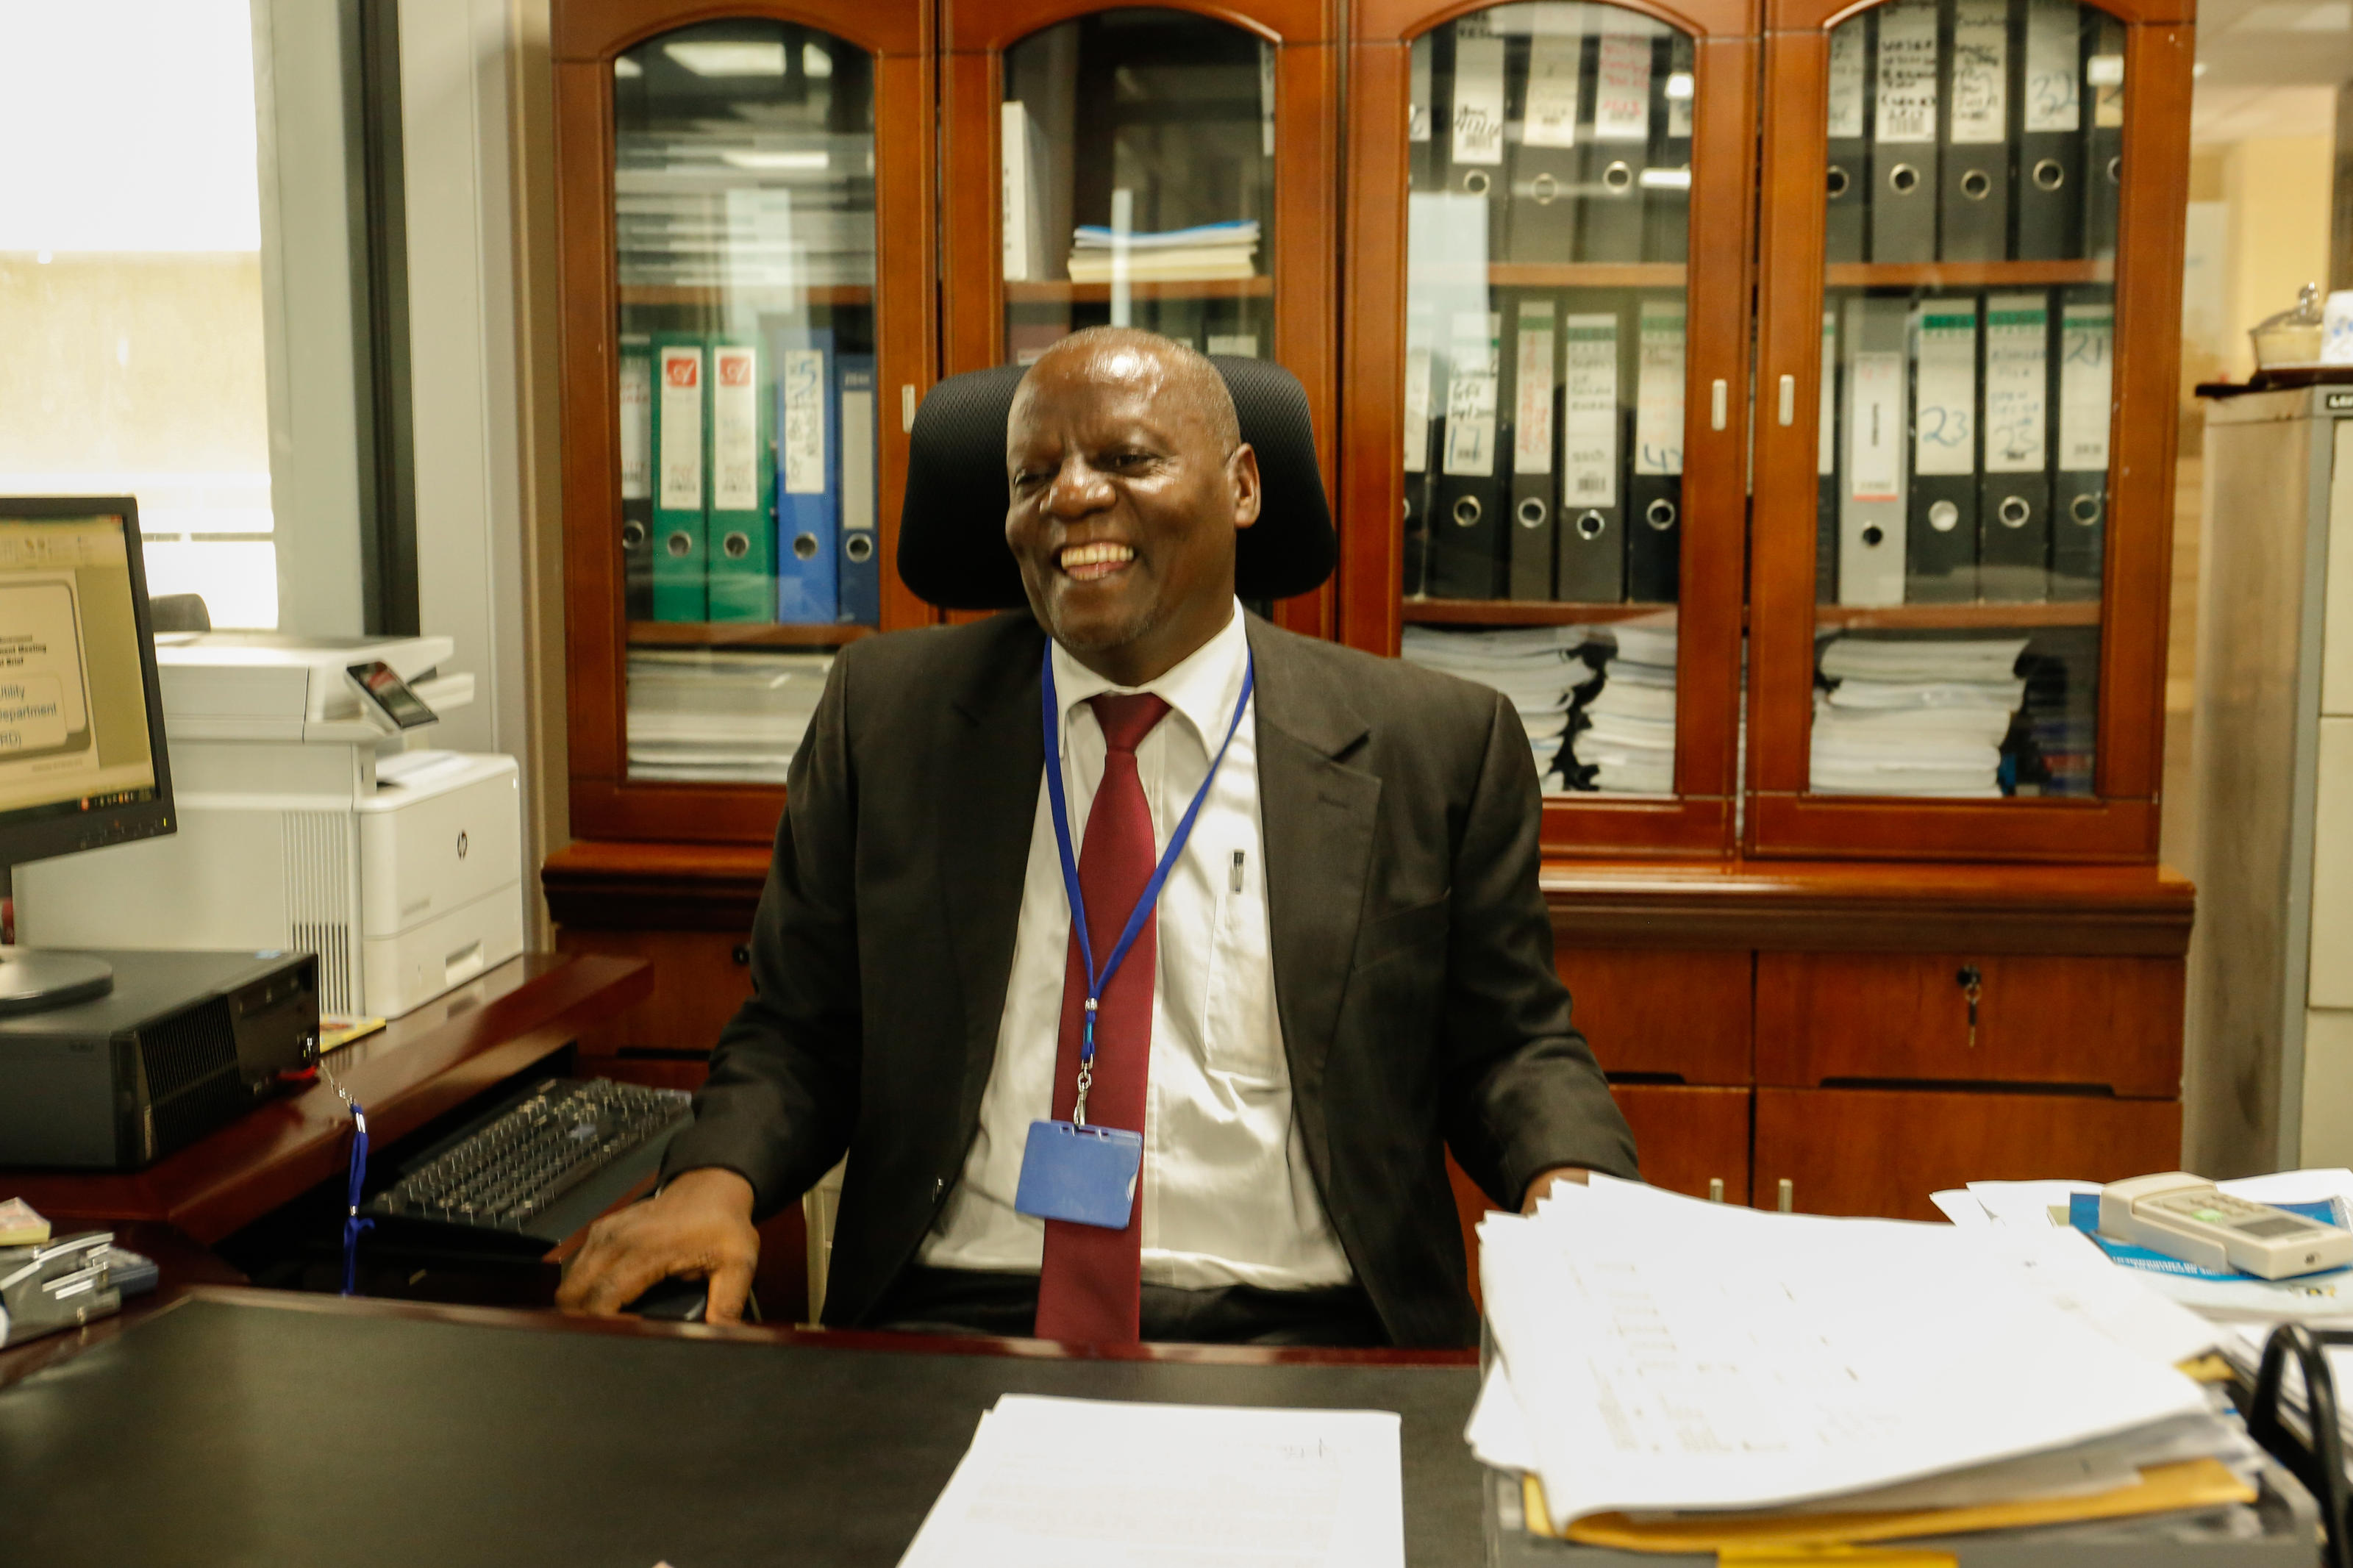 Tumusiime Christopher, Acting Commissioner for Regulation in the Department of Water Regulation in his office at the Ministry of Water and Environment, Luzira, Kampala, Uganda, February, 2019.